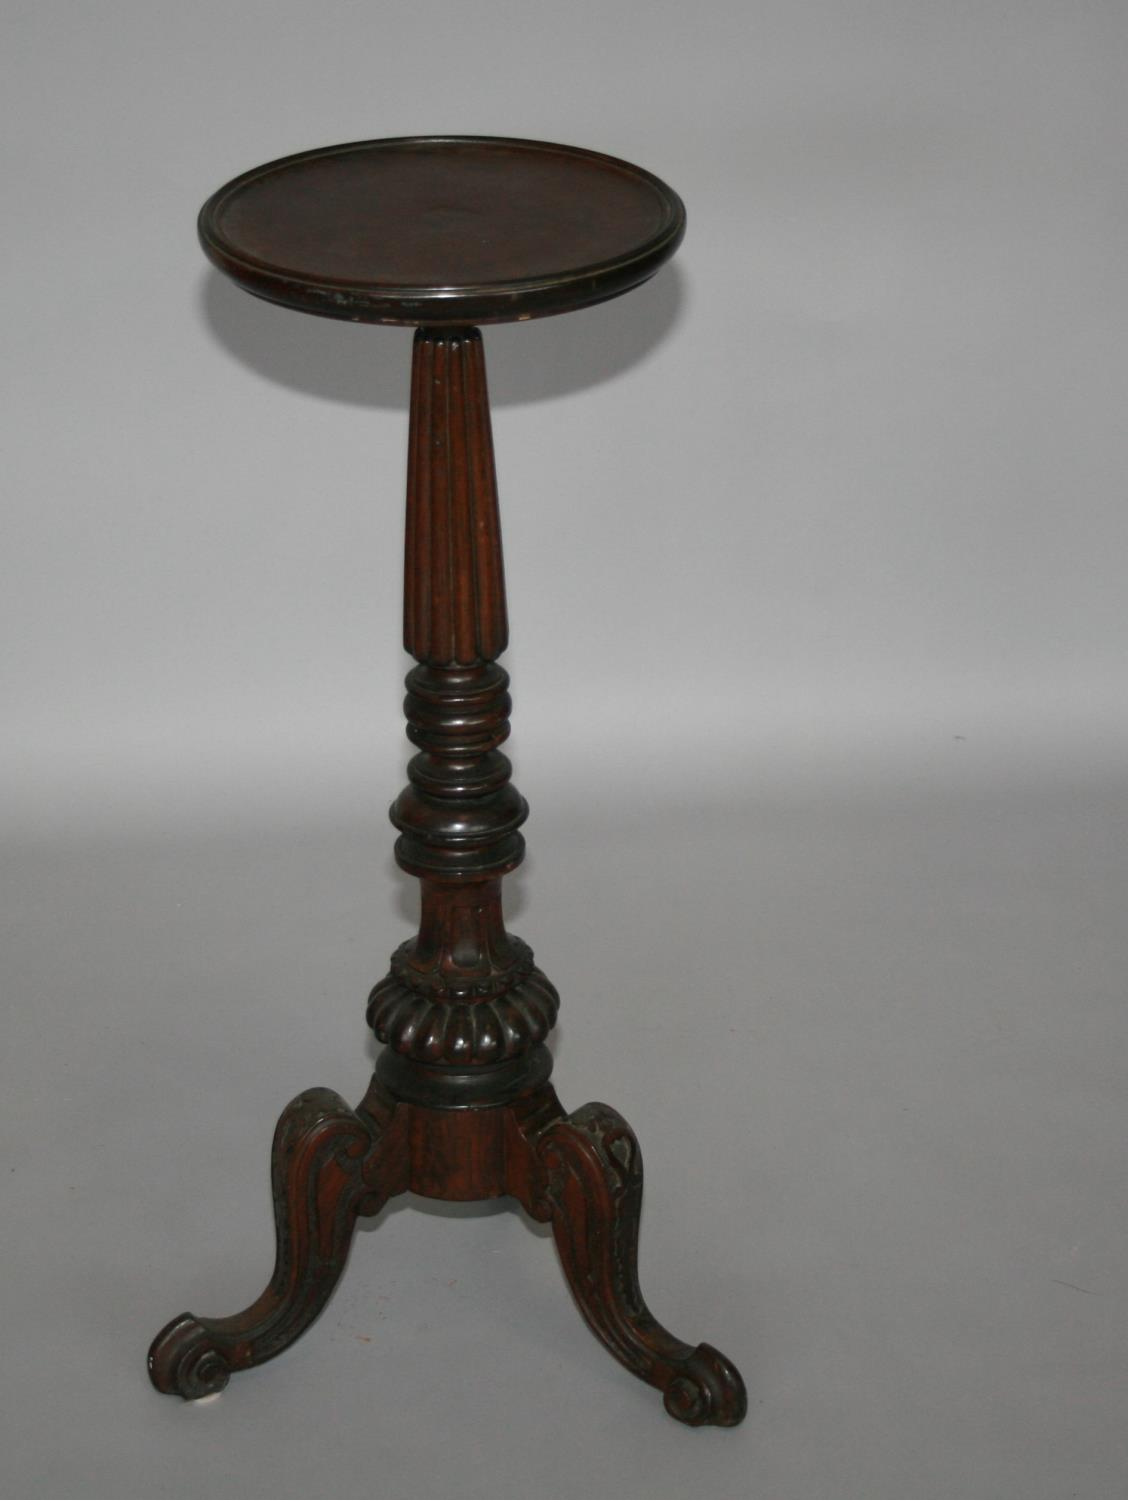 19th Century mahogany torchiere with circular top on tapering support 40 W x 84 H